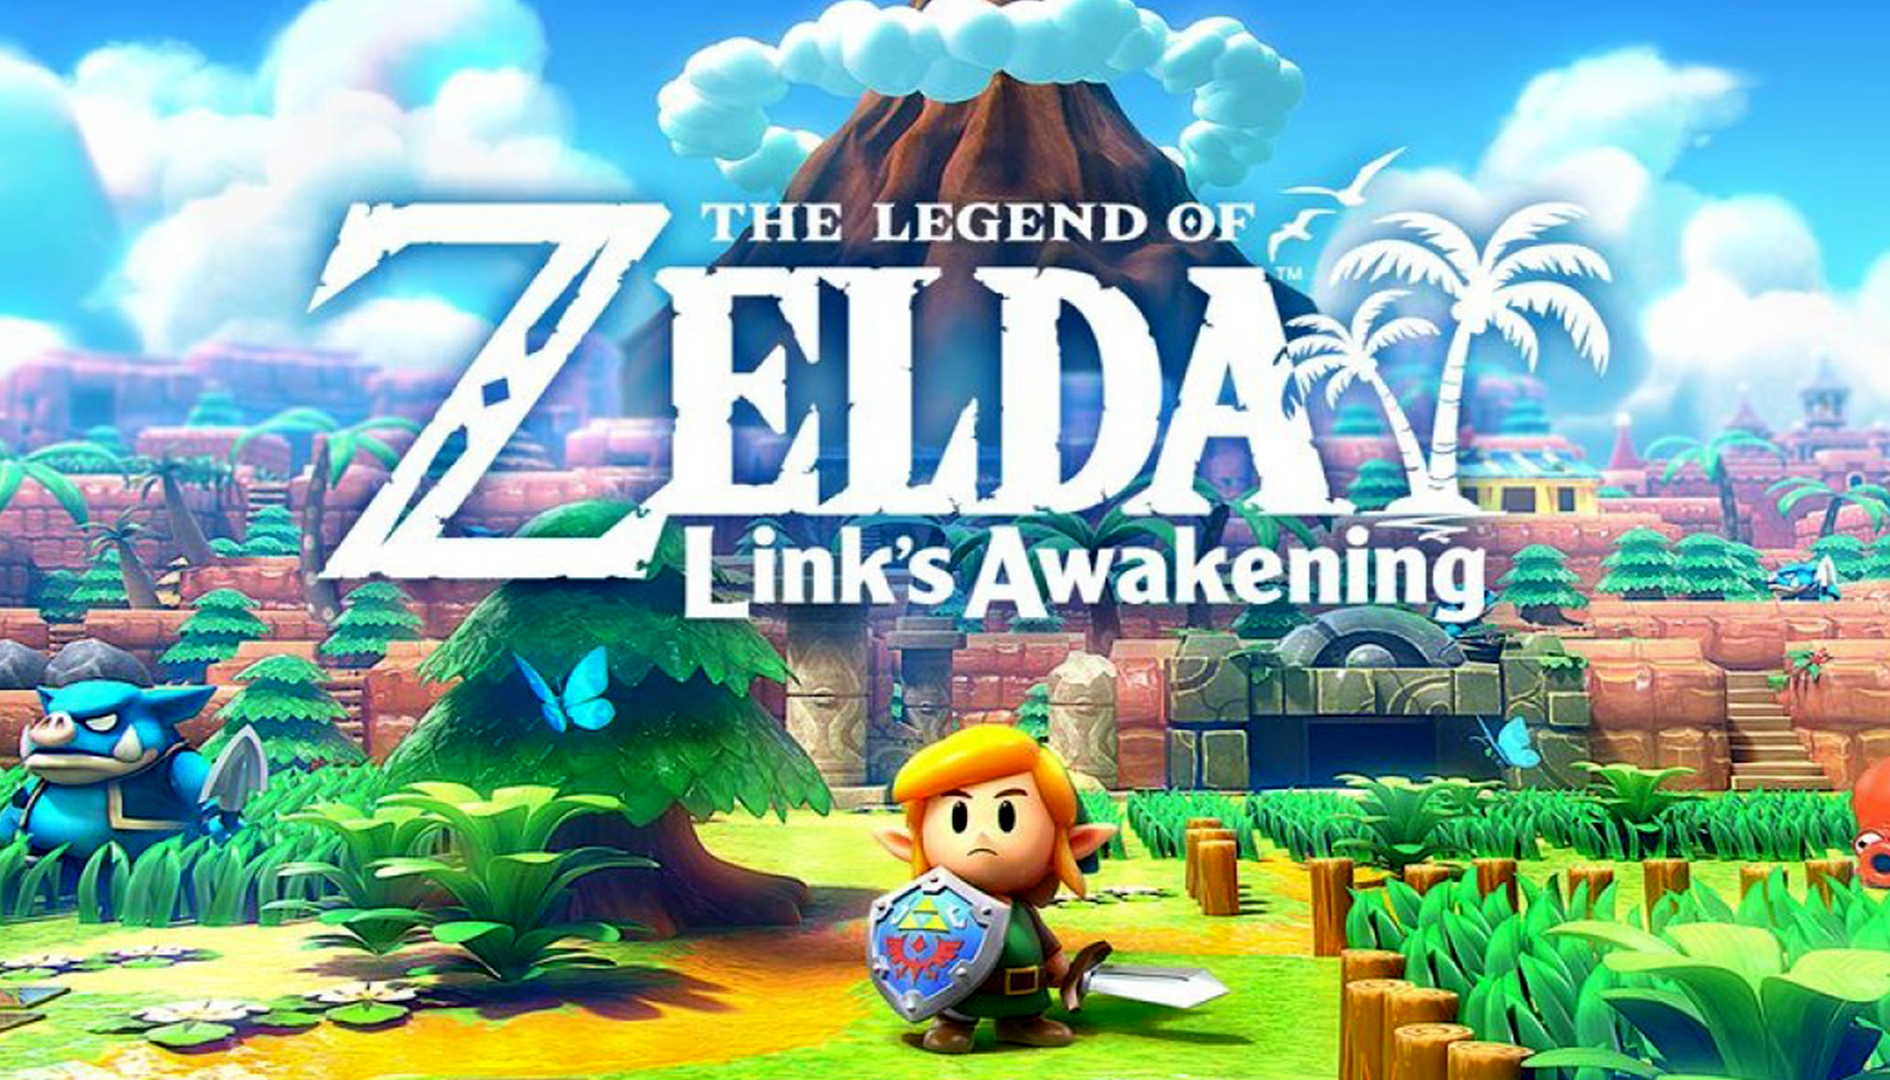 The Legend of Zelda Link's Awakening ha fatto segnare vendite record in Europa